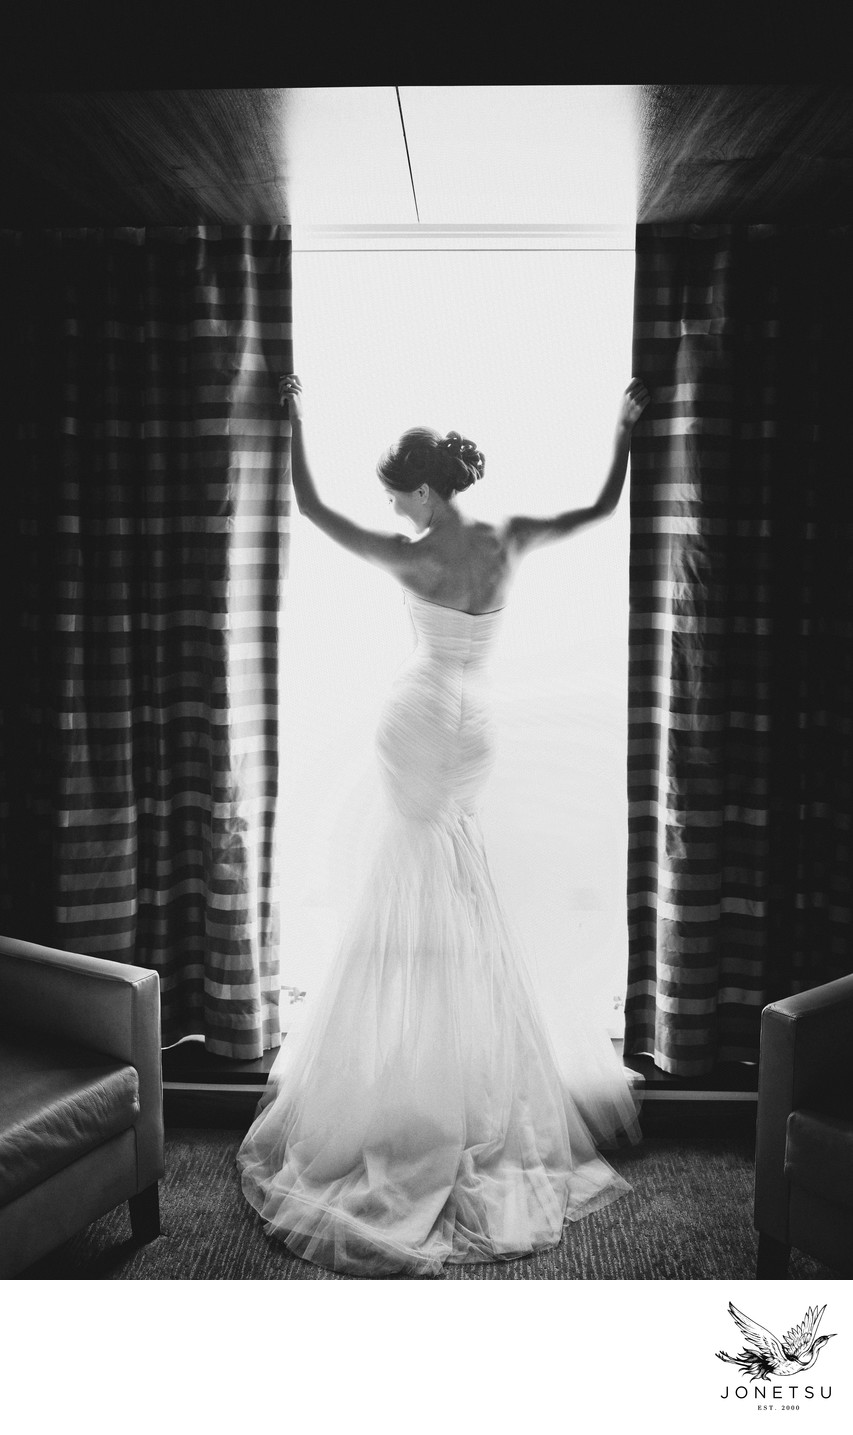 Luxury bridal gown portrait of bride in hotel room